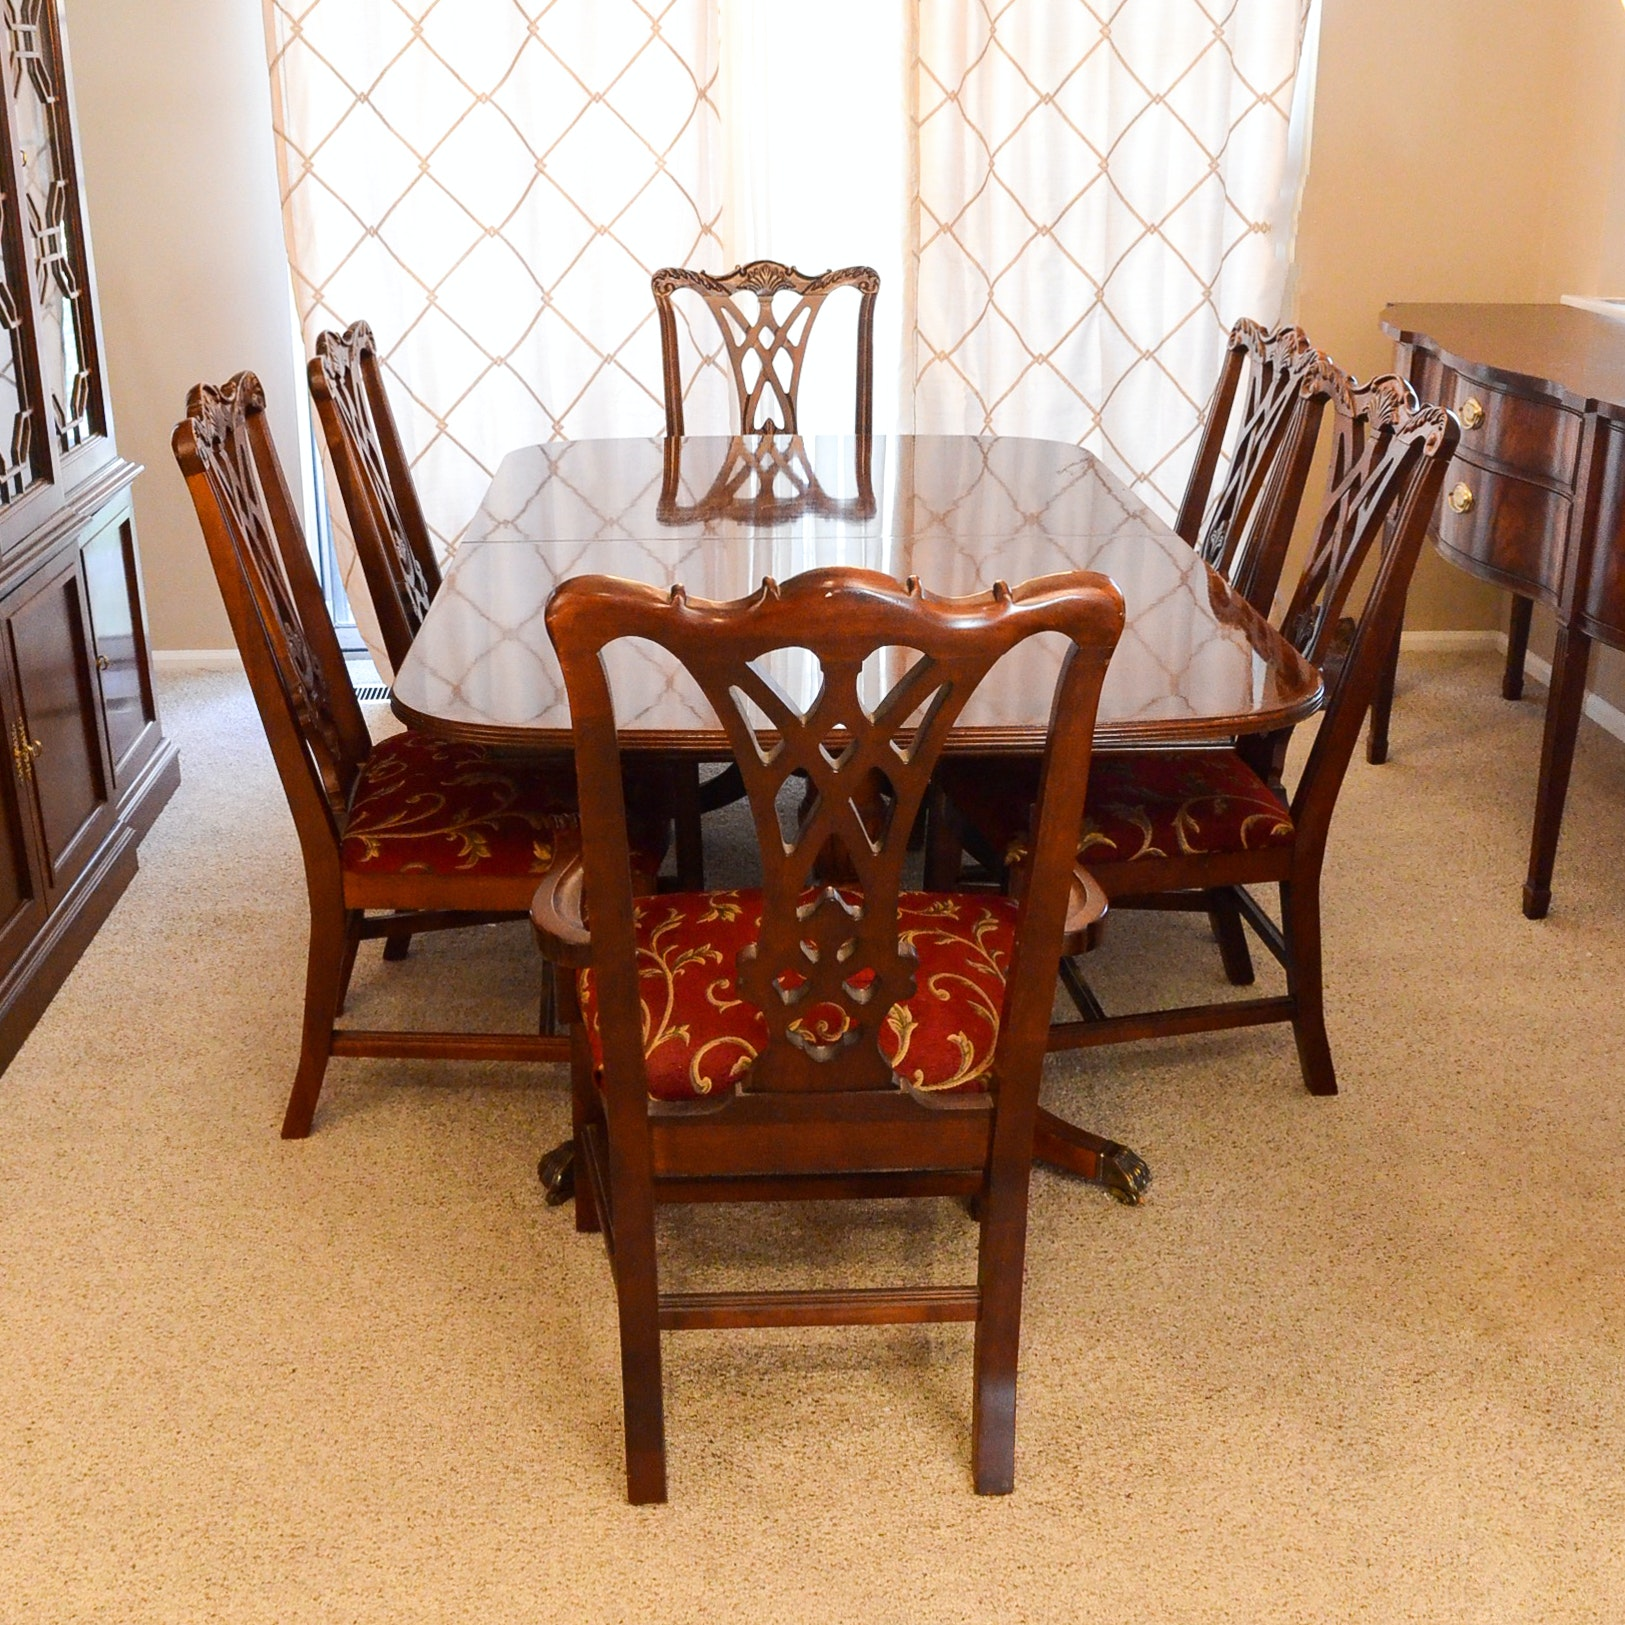 Thomasville Chippendale Style Dining Table With Six Chairs ...